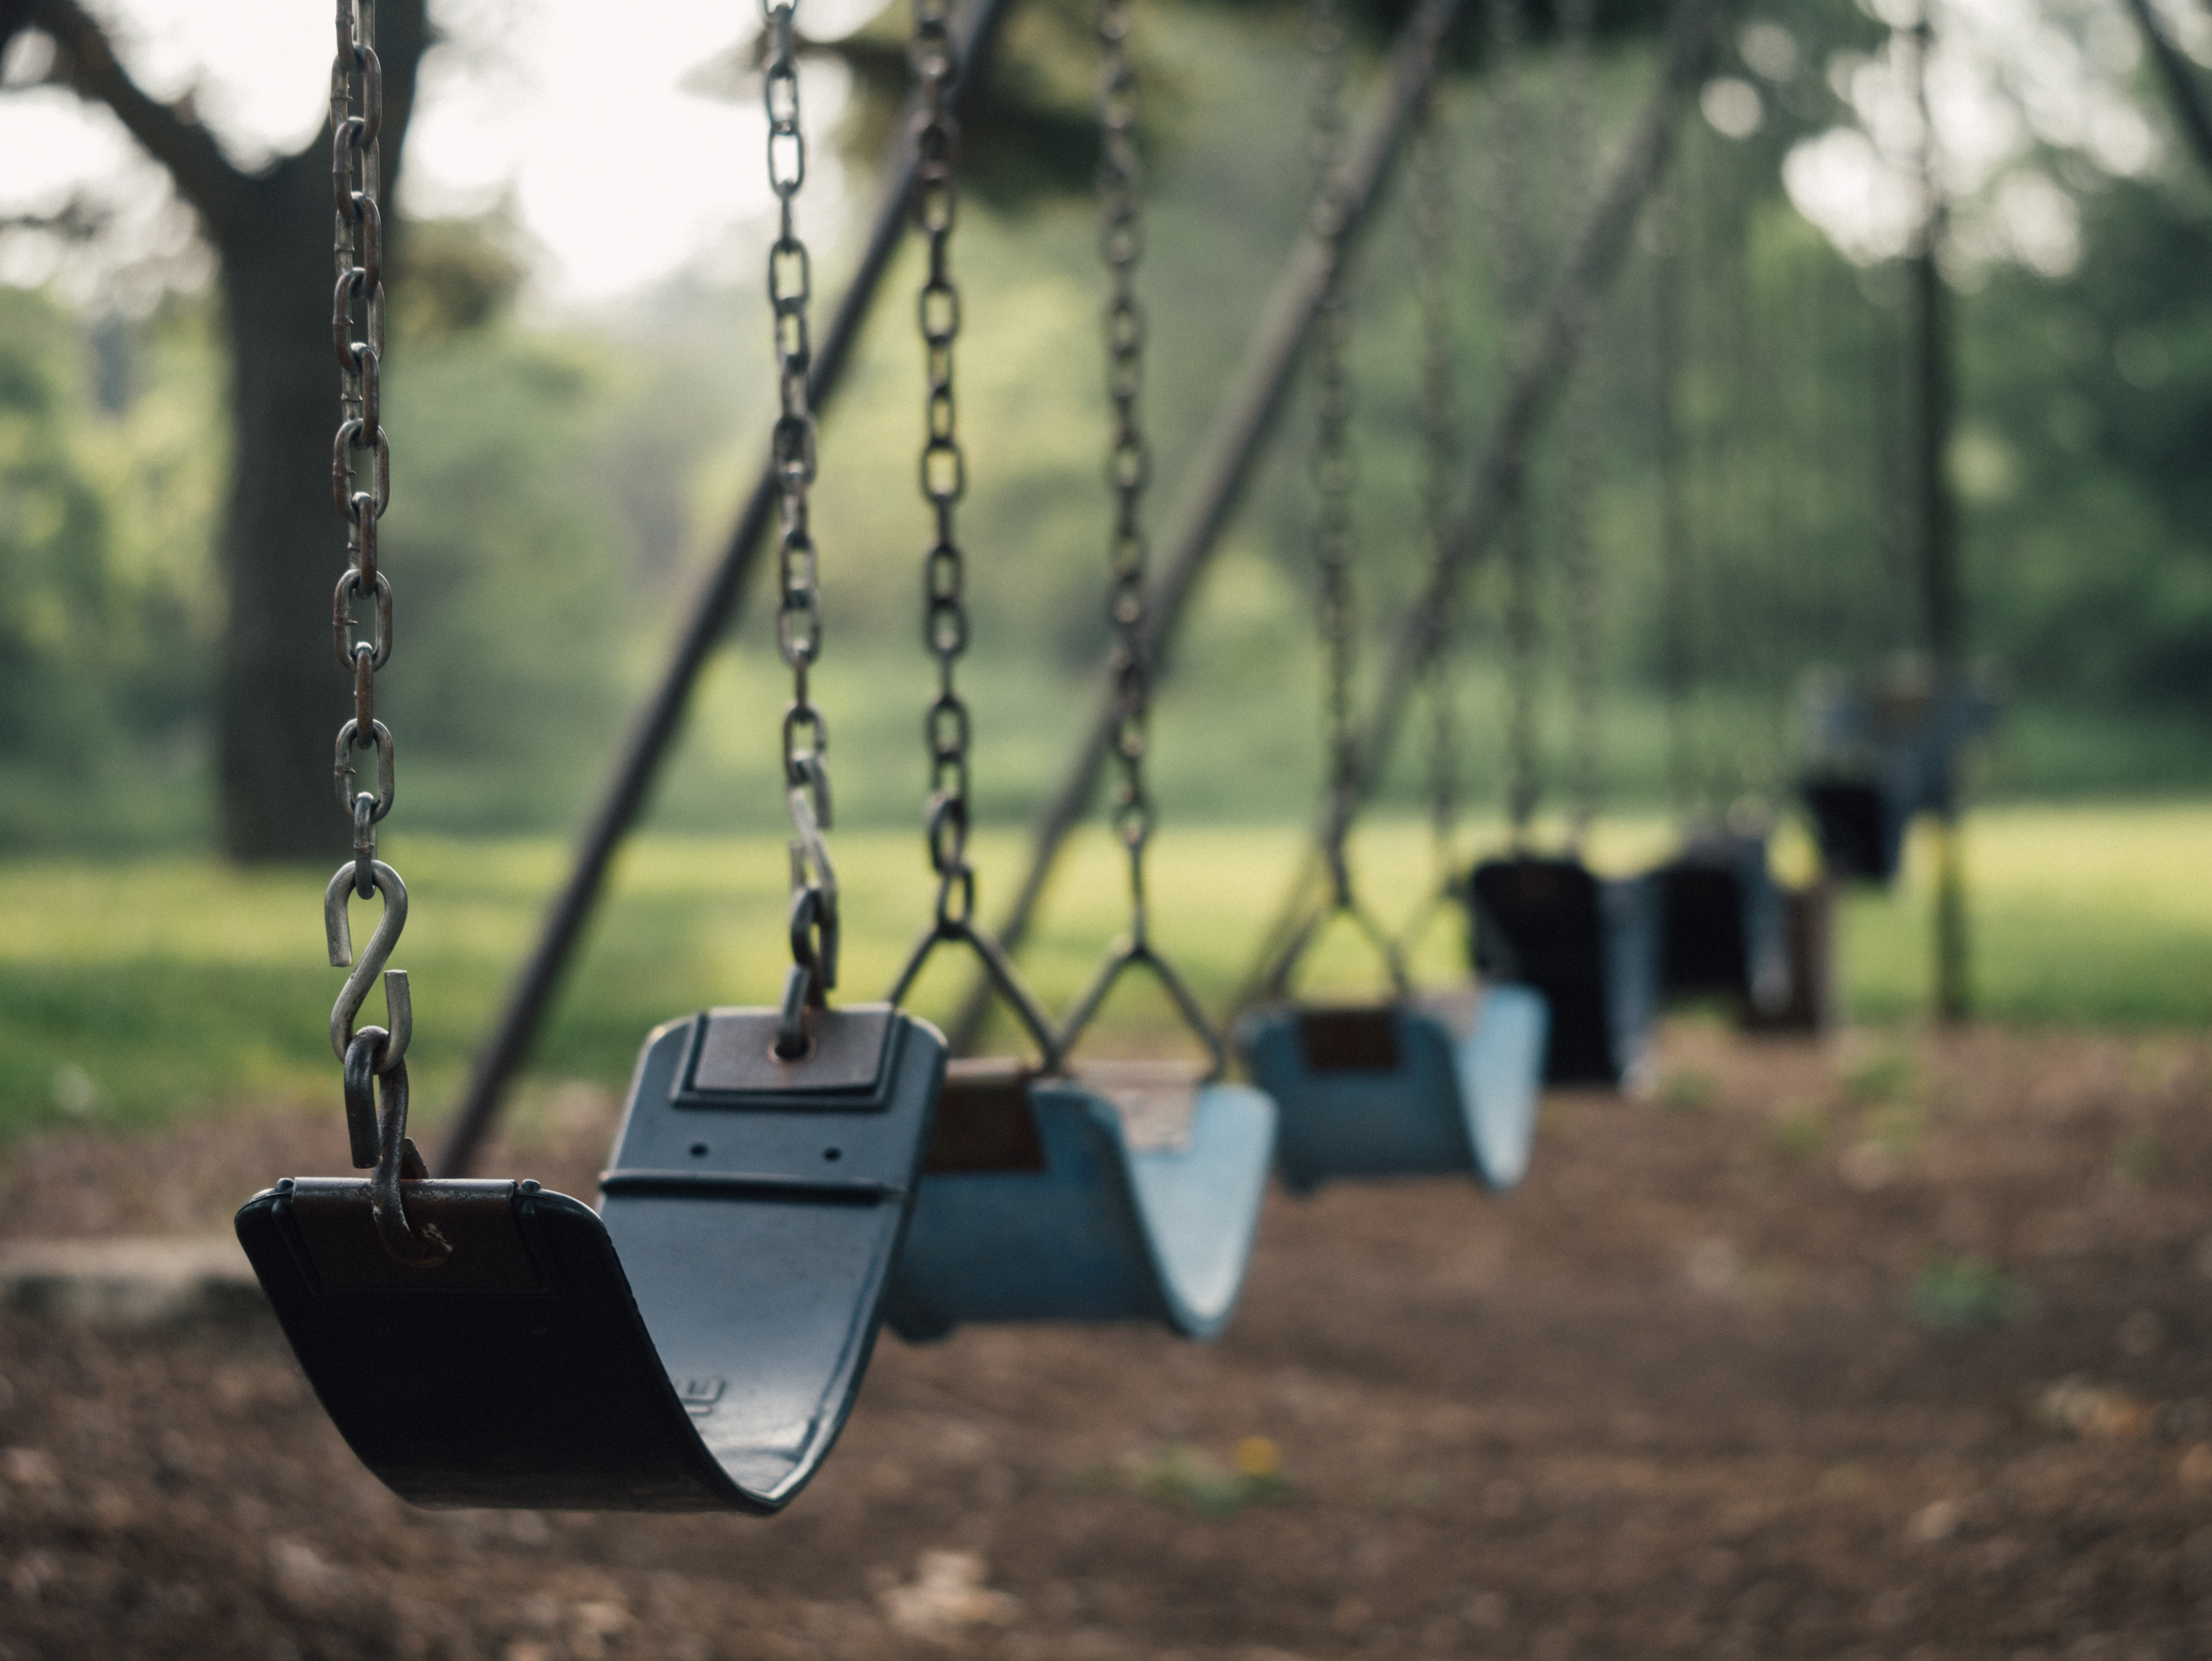 selective focus shot of outdoor swing